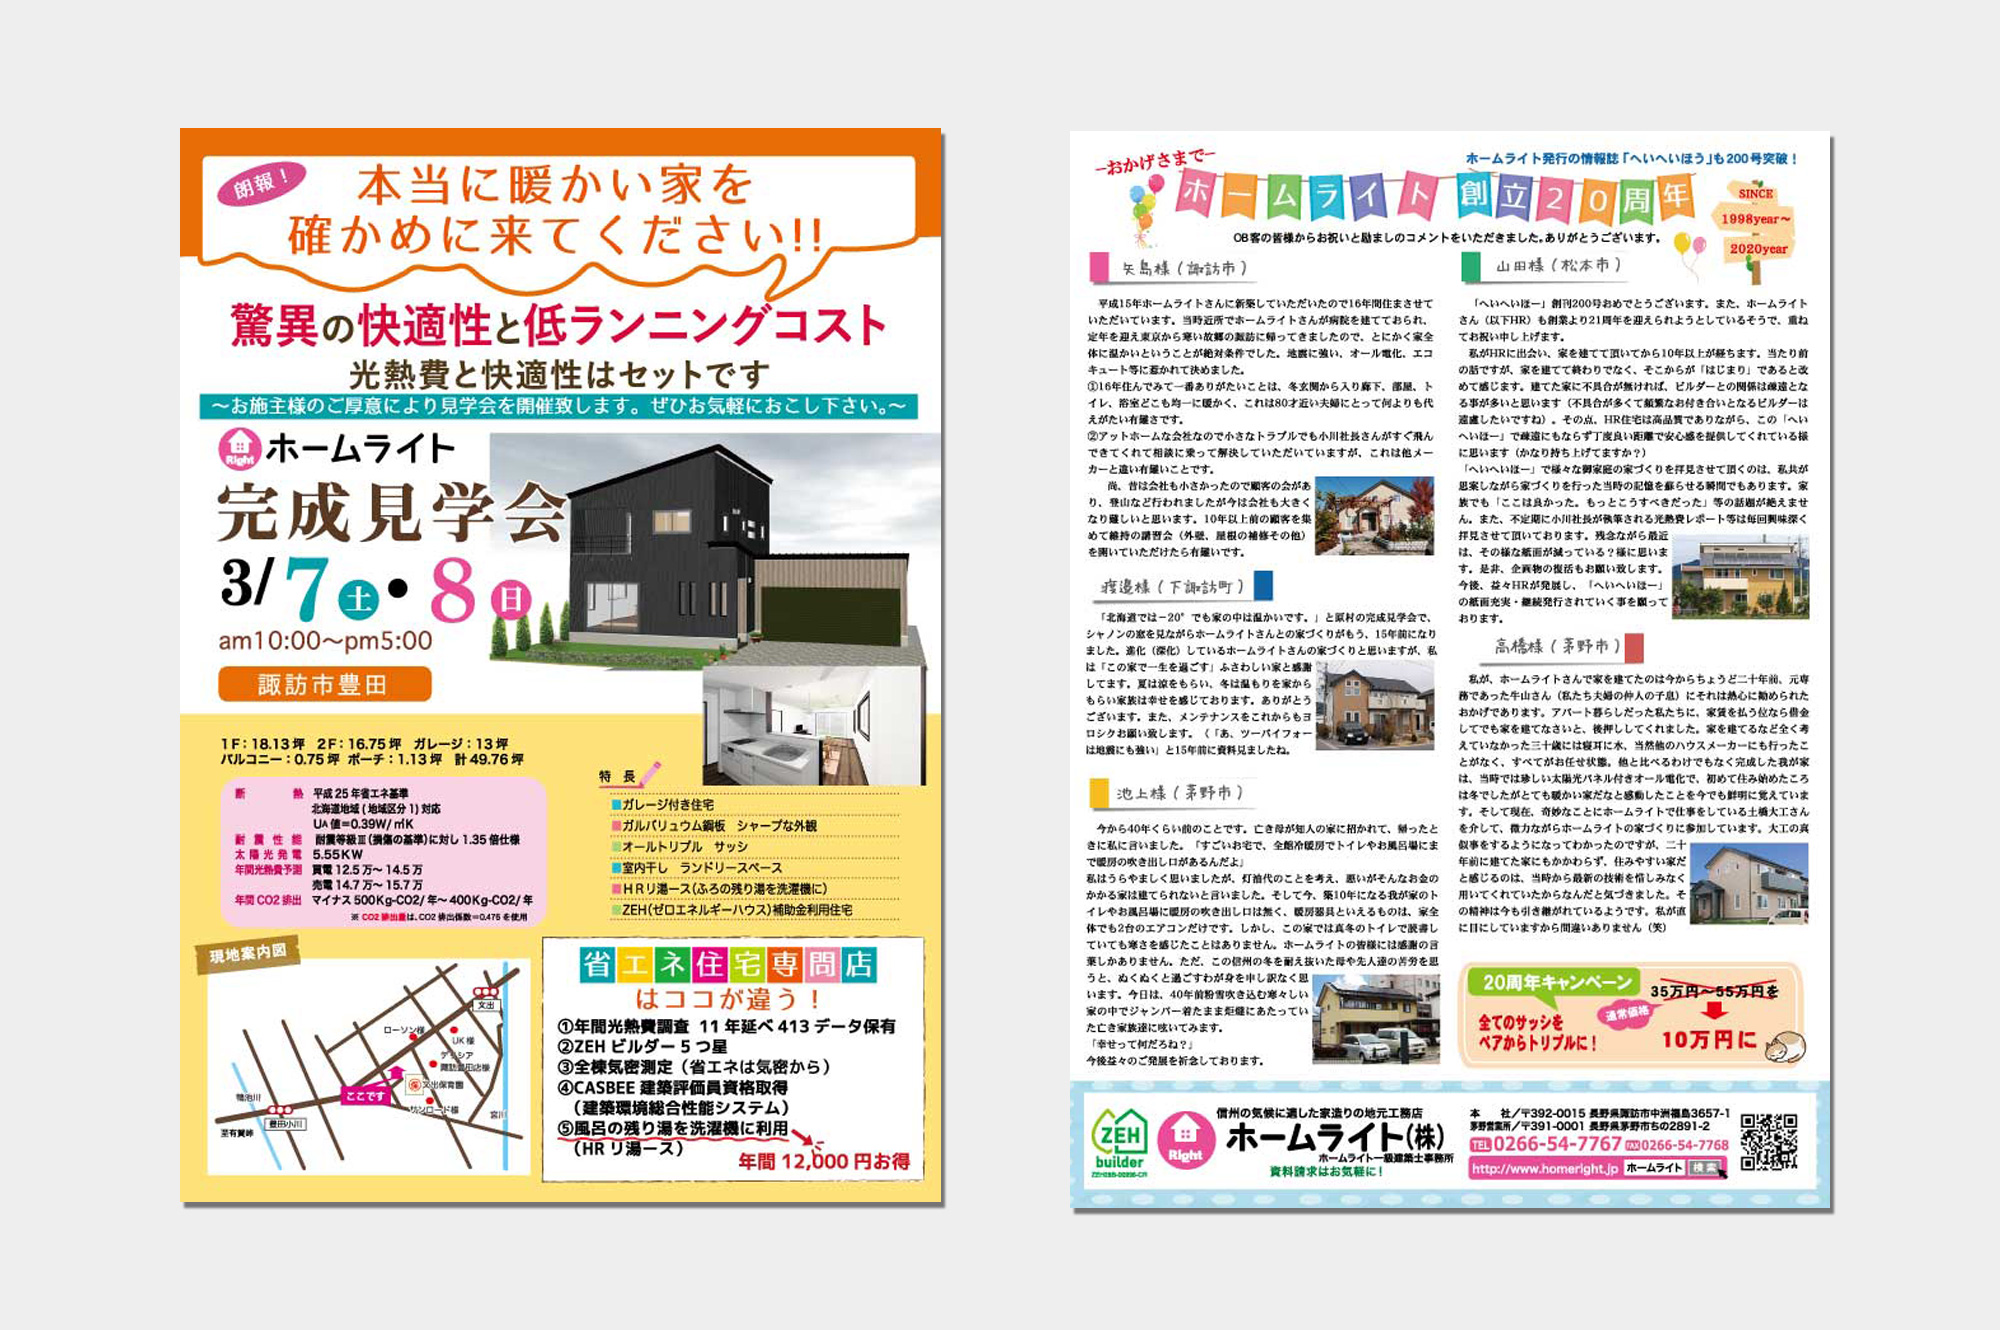 A4ちらし(見学会案内)